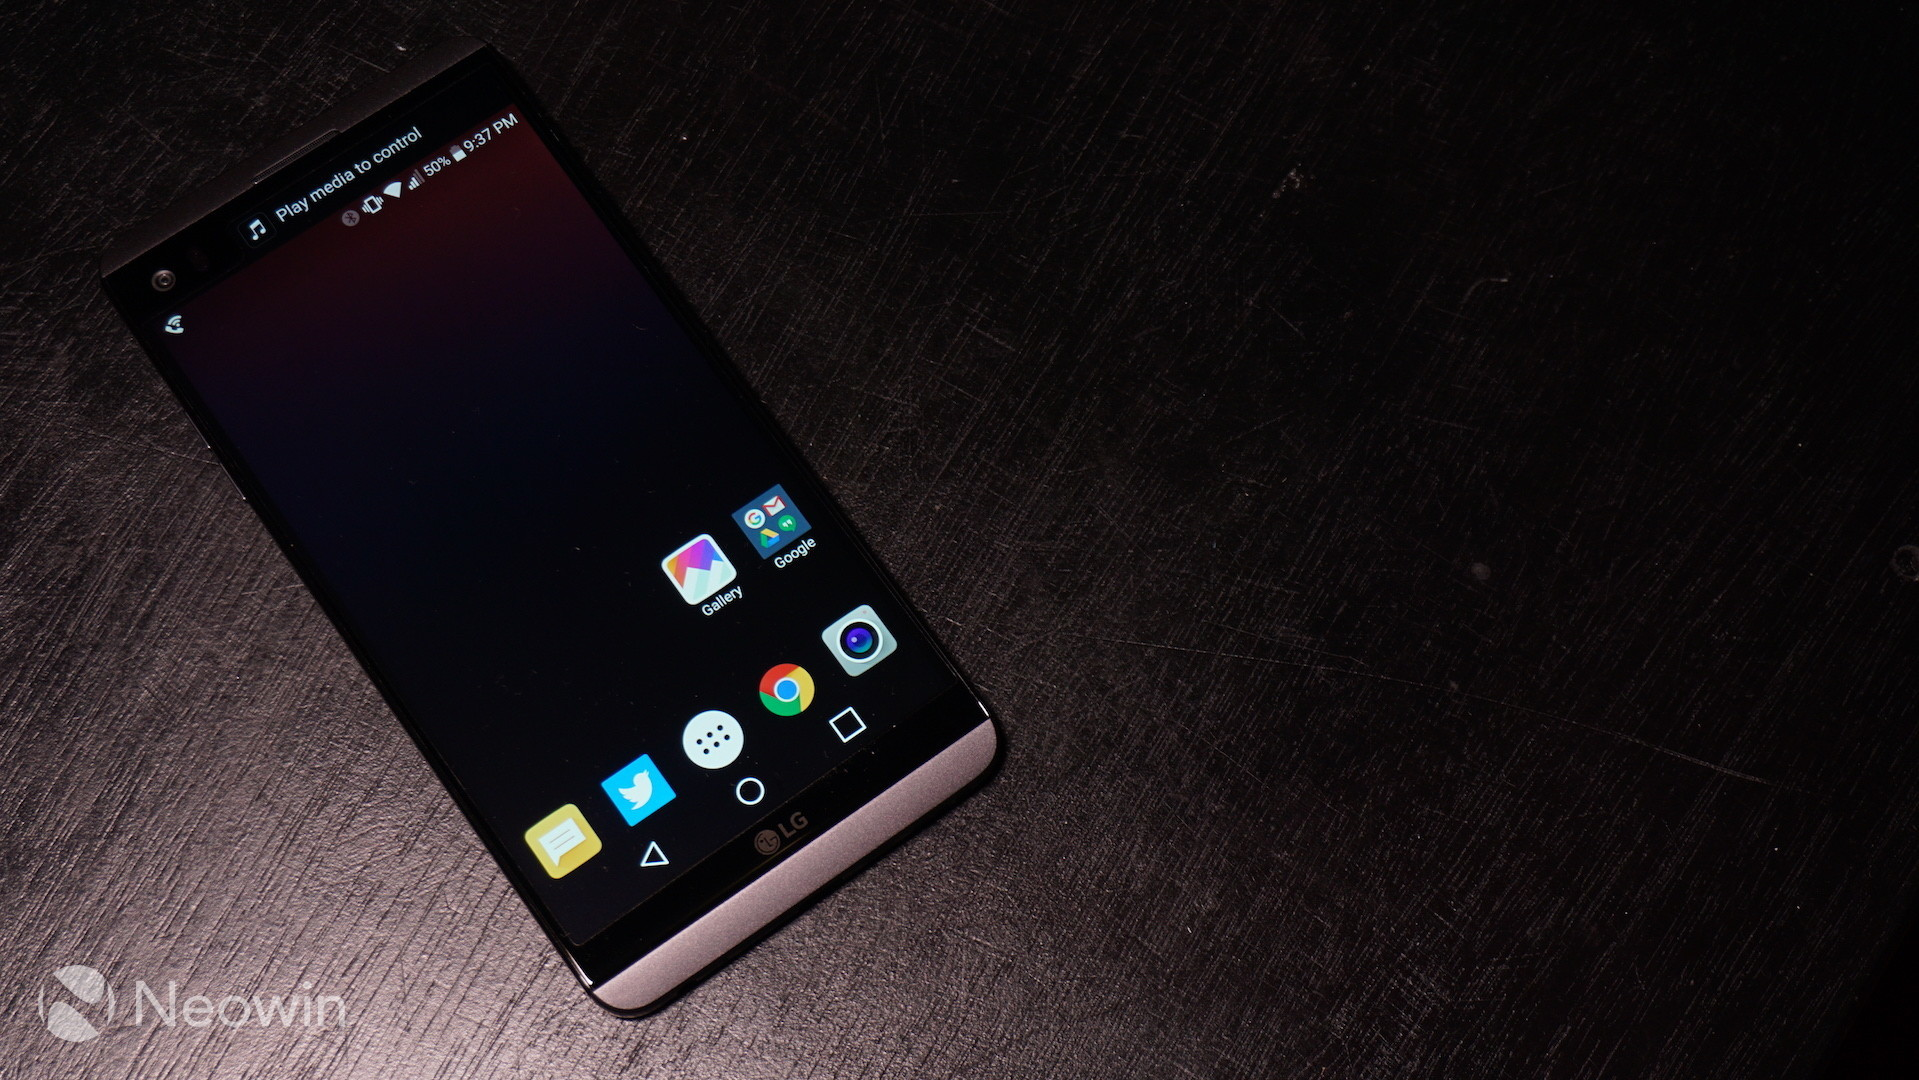 That didn't take long - the LG V20 has already been rooted